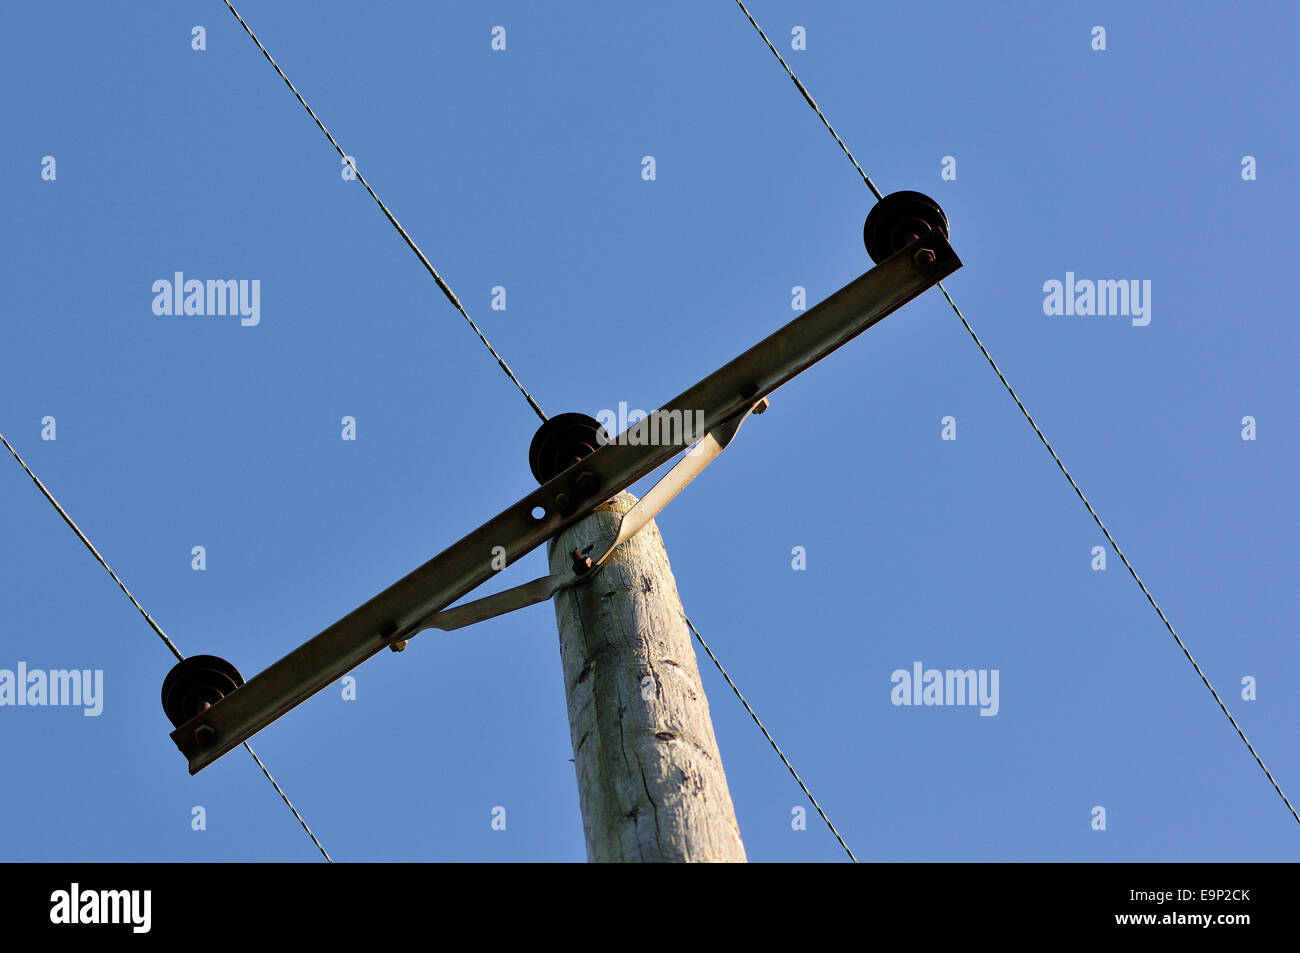 Rural Electricity powerlines suspended by wooden post - Stock Image